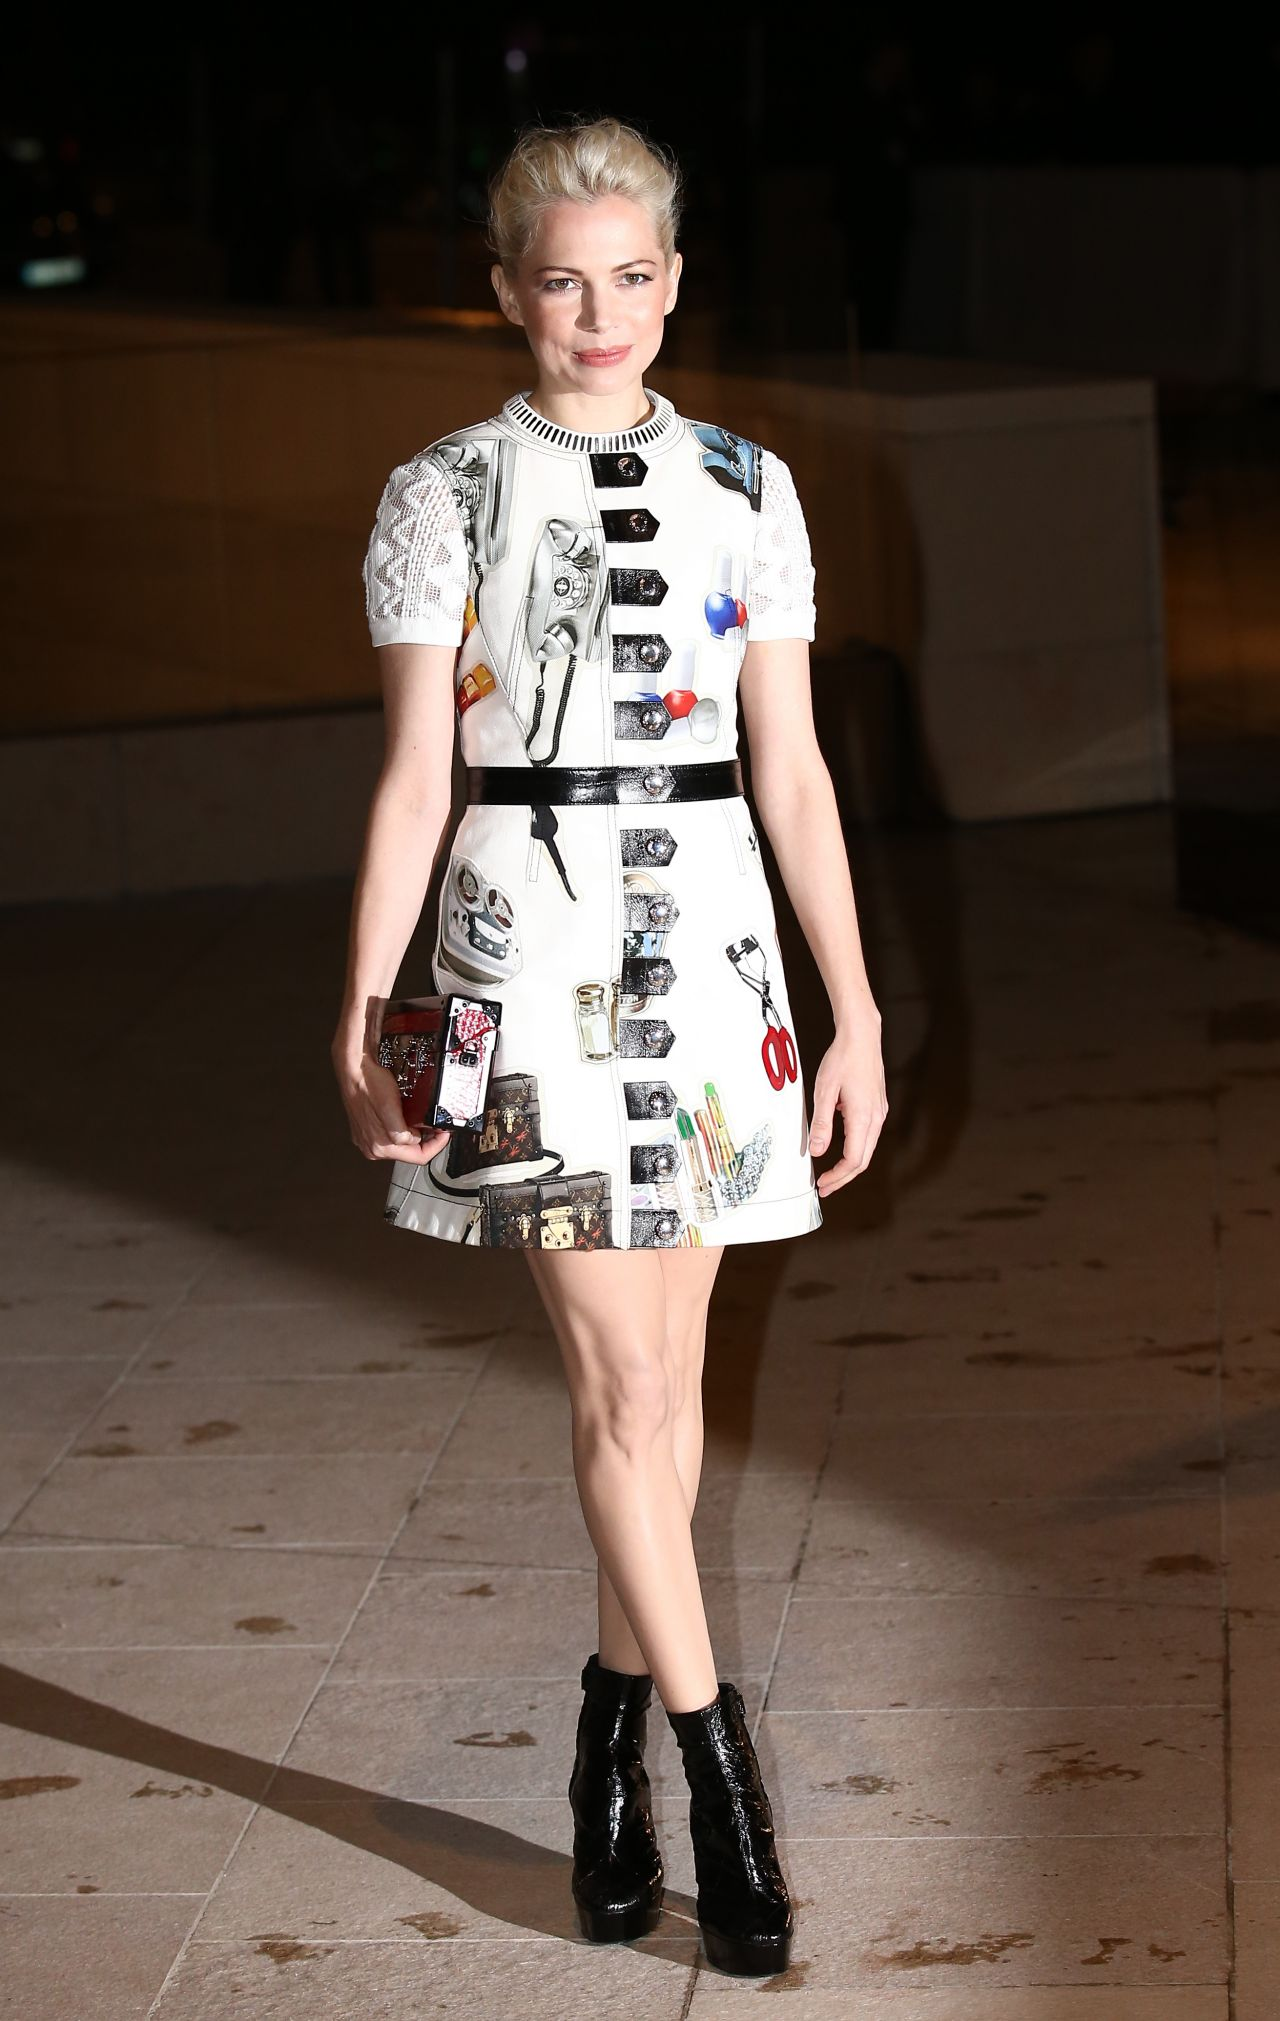 michelle-williams-in-france-foundation-louis-vuitton-opening-in-boulogne-billancourt_1